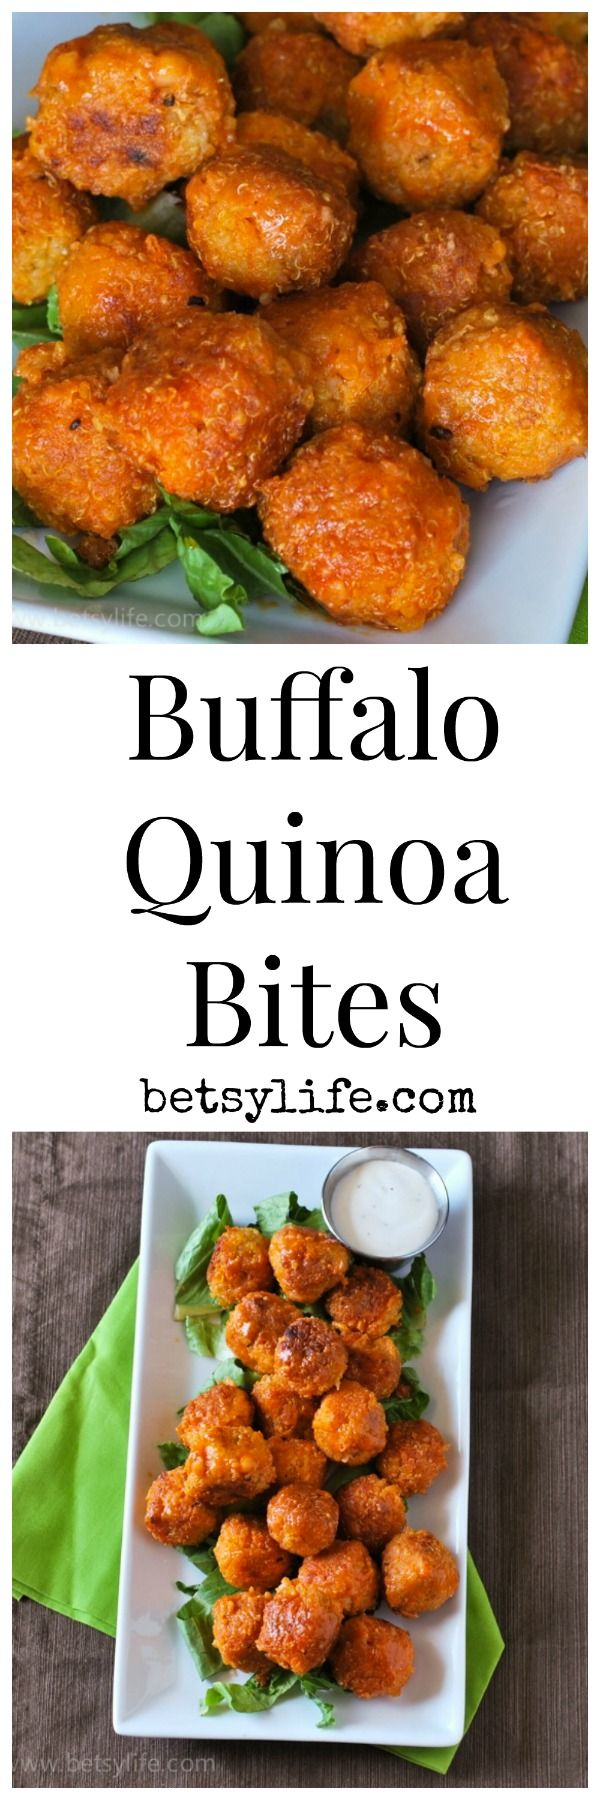 Buffalo Quinoa Bites A healthy appetizer your family and guests are just going to love